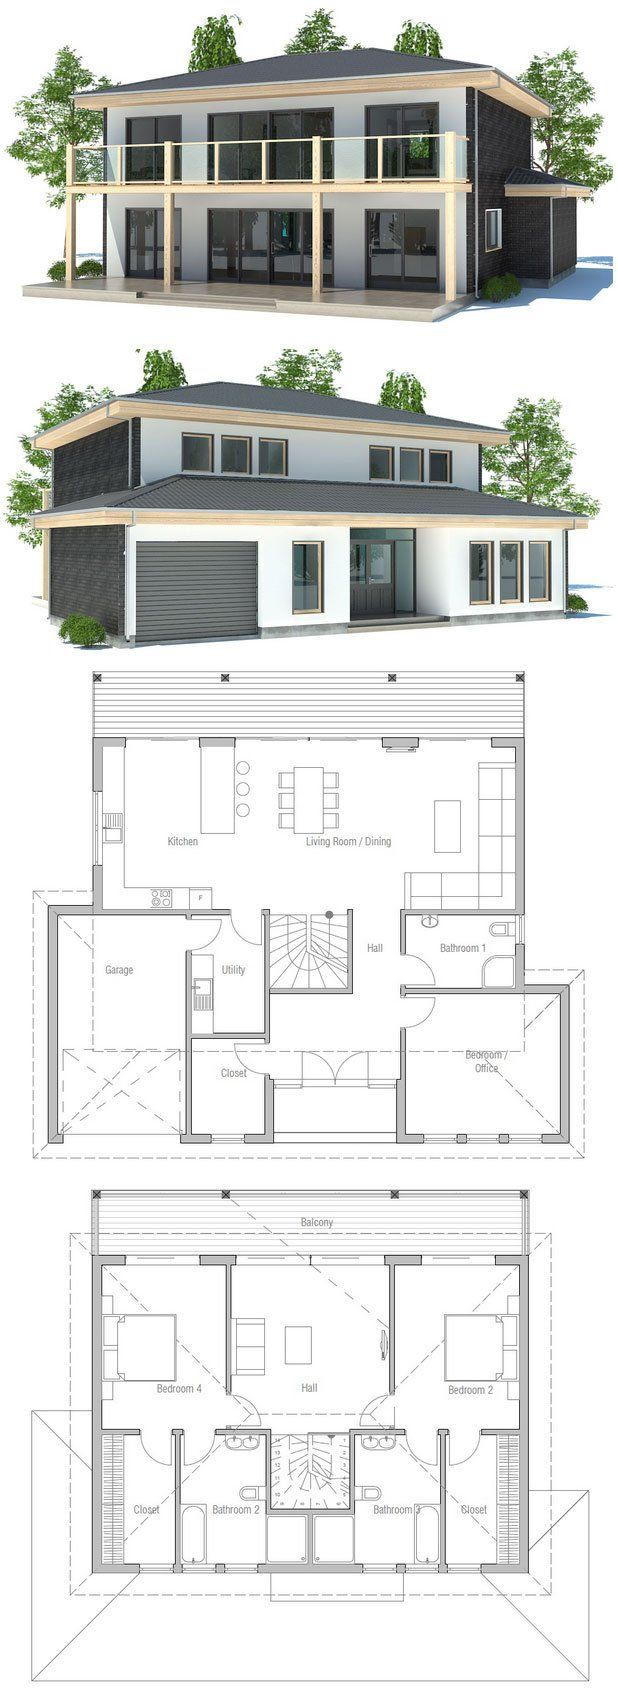 Simple Duplex House Design In Philippines: Small & Simple House Plan In Modern Architecture. Floor